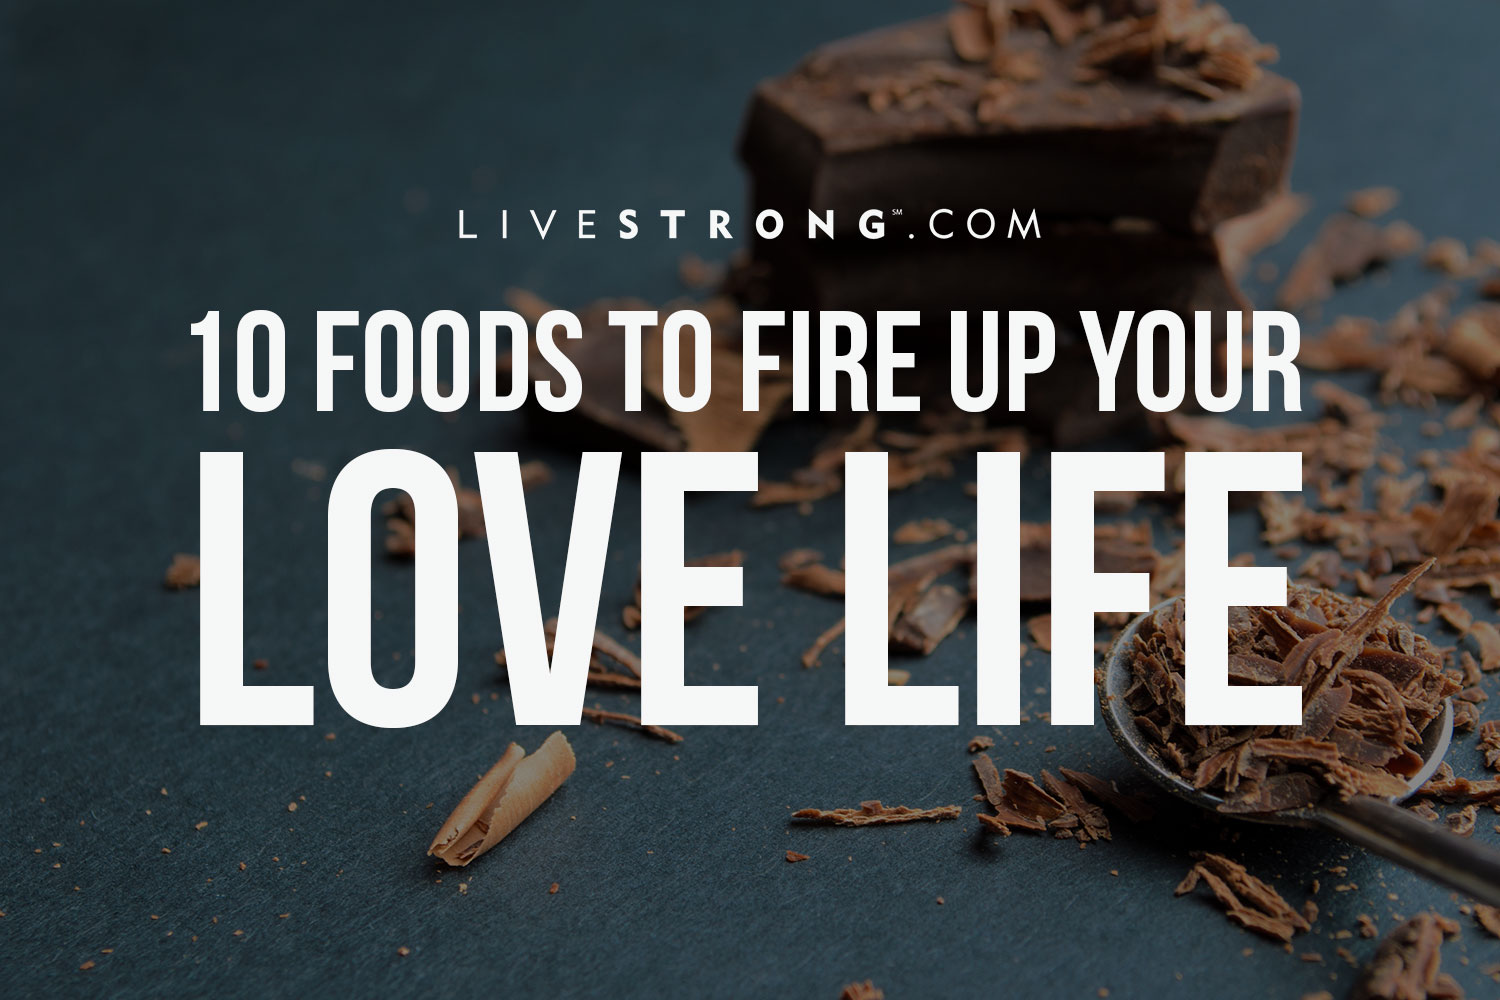 Top foods to increase libido or sexual desire my health tips - 10 Foods To Fire Up Your Love Life